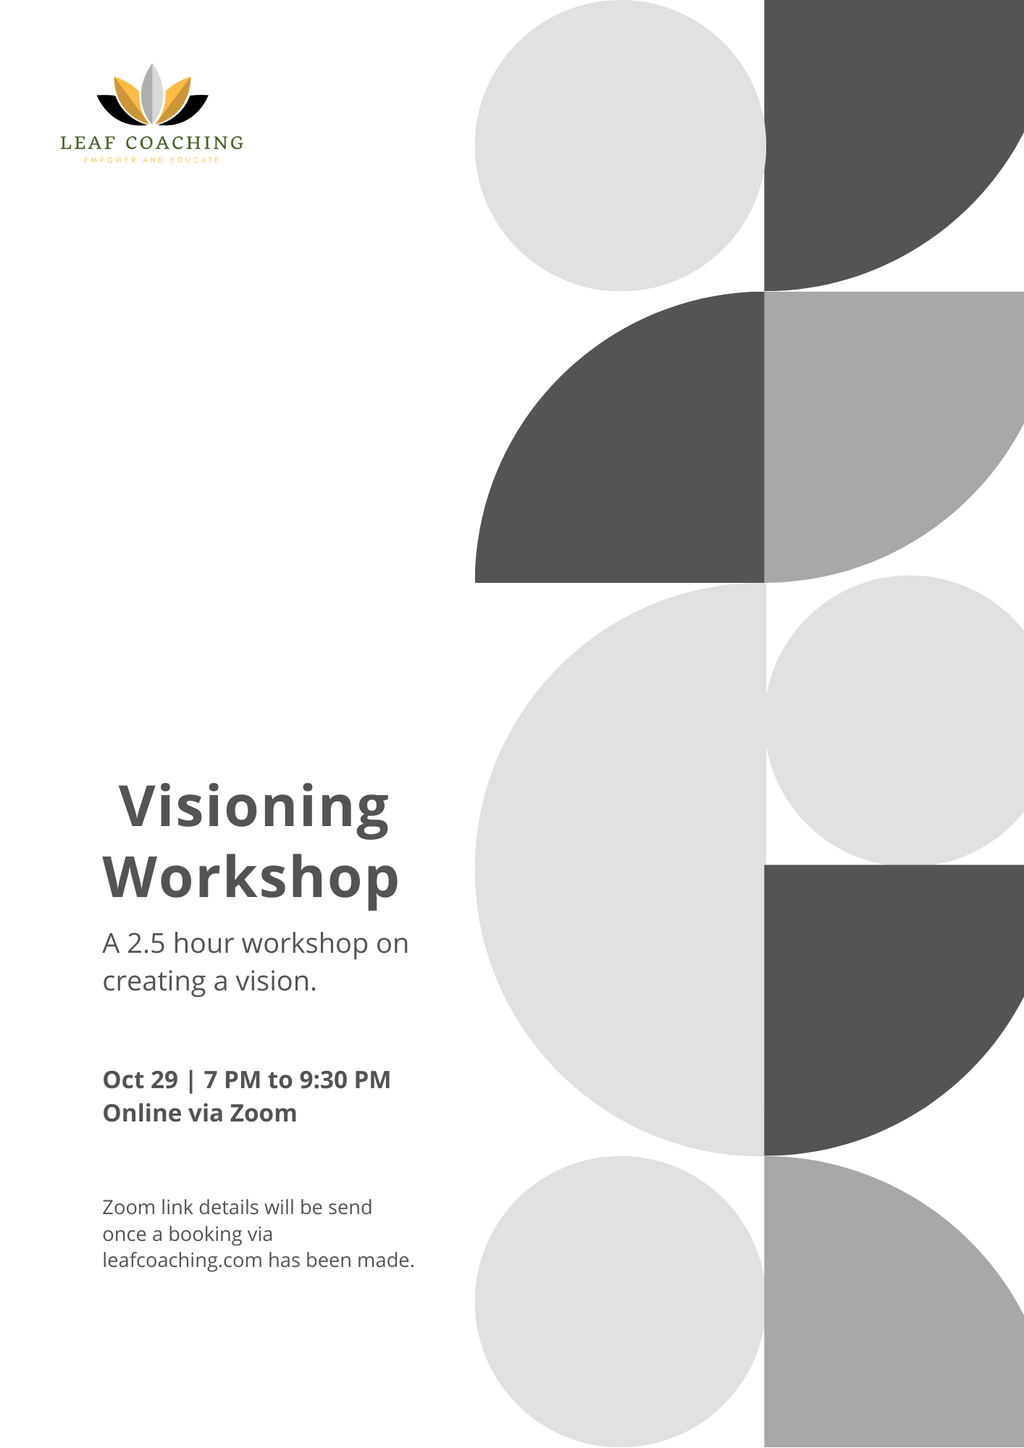 Leaf Coaching Workshop on Visioning & Creating